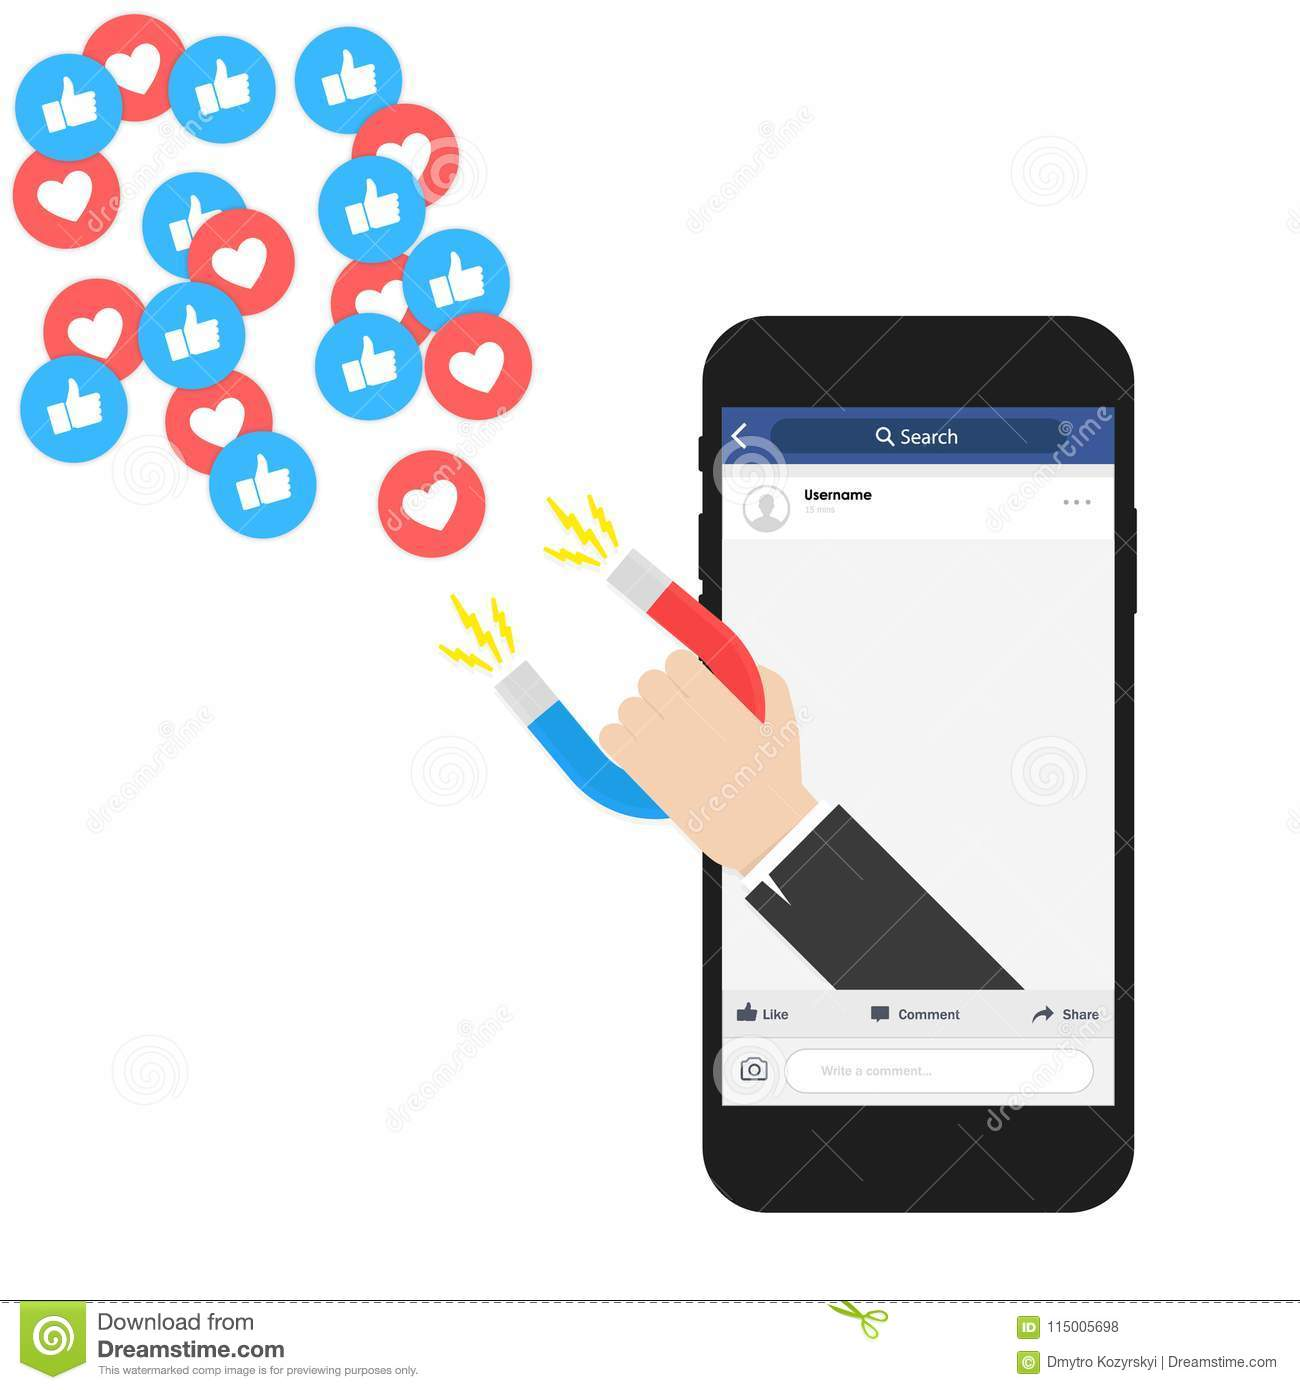 Social media online marketing. Digital advertising ads. The powerful of influencer marketing is like the magnetic field